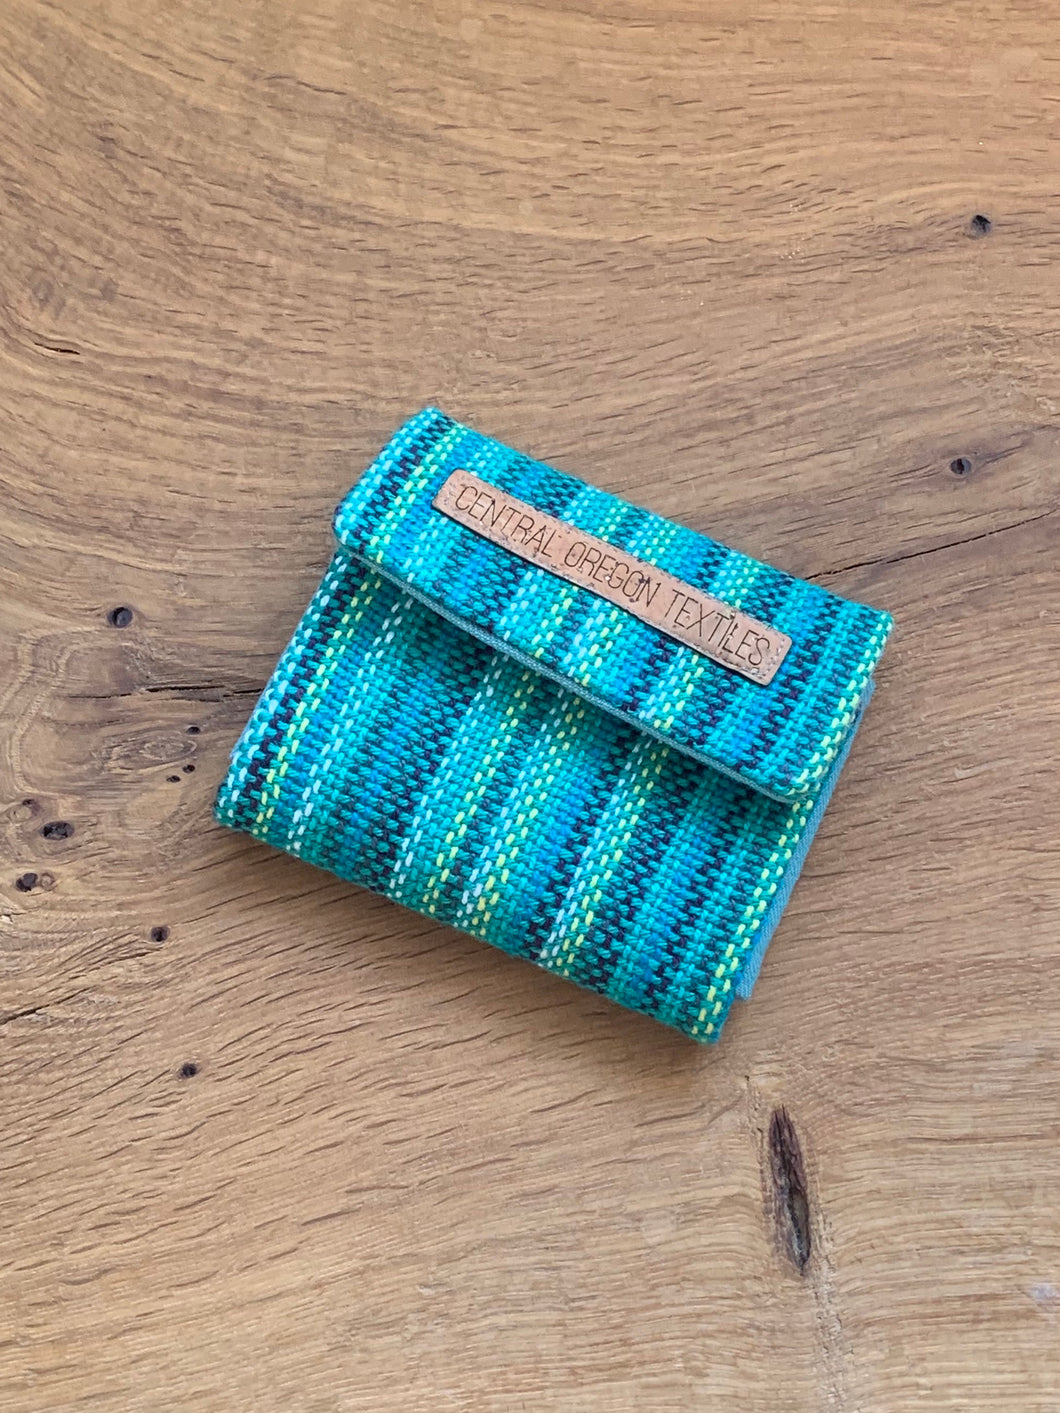 Handwoven teal, white, and blue handwoven cotton fabric sewn with wool and cork to organize your earrings and necklaces during travel.